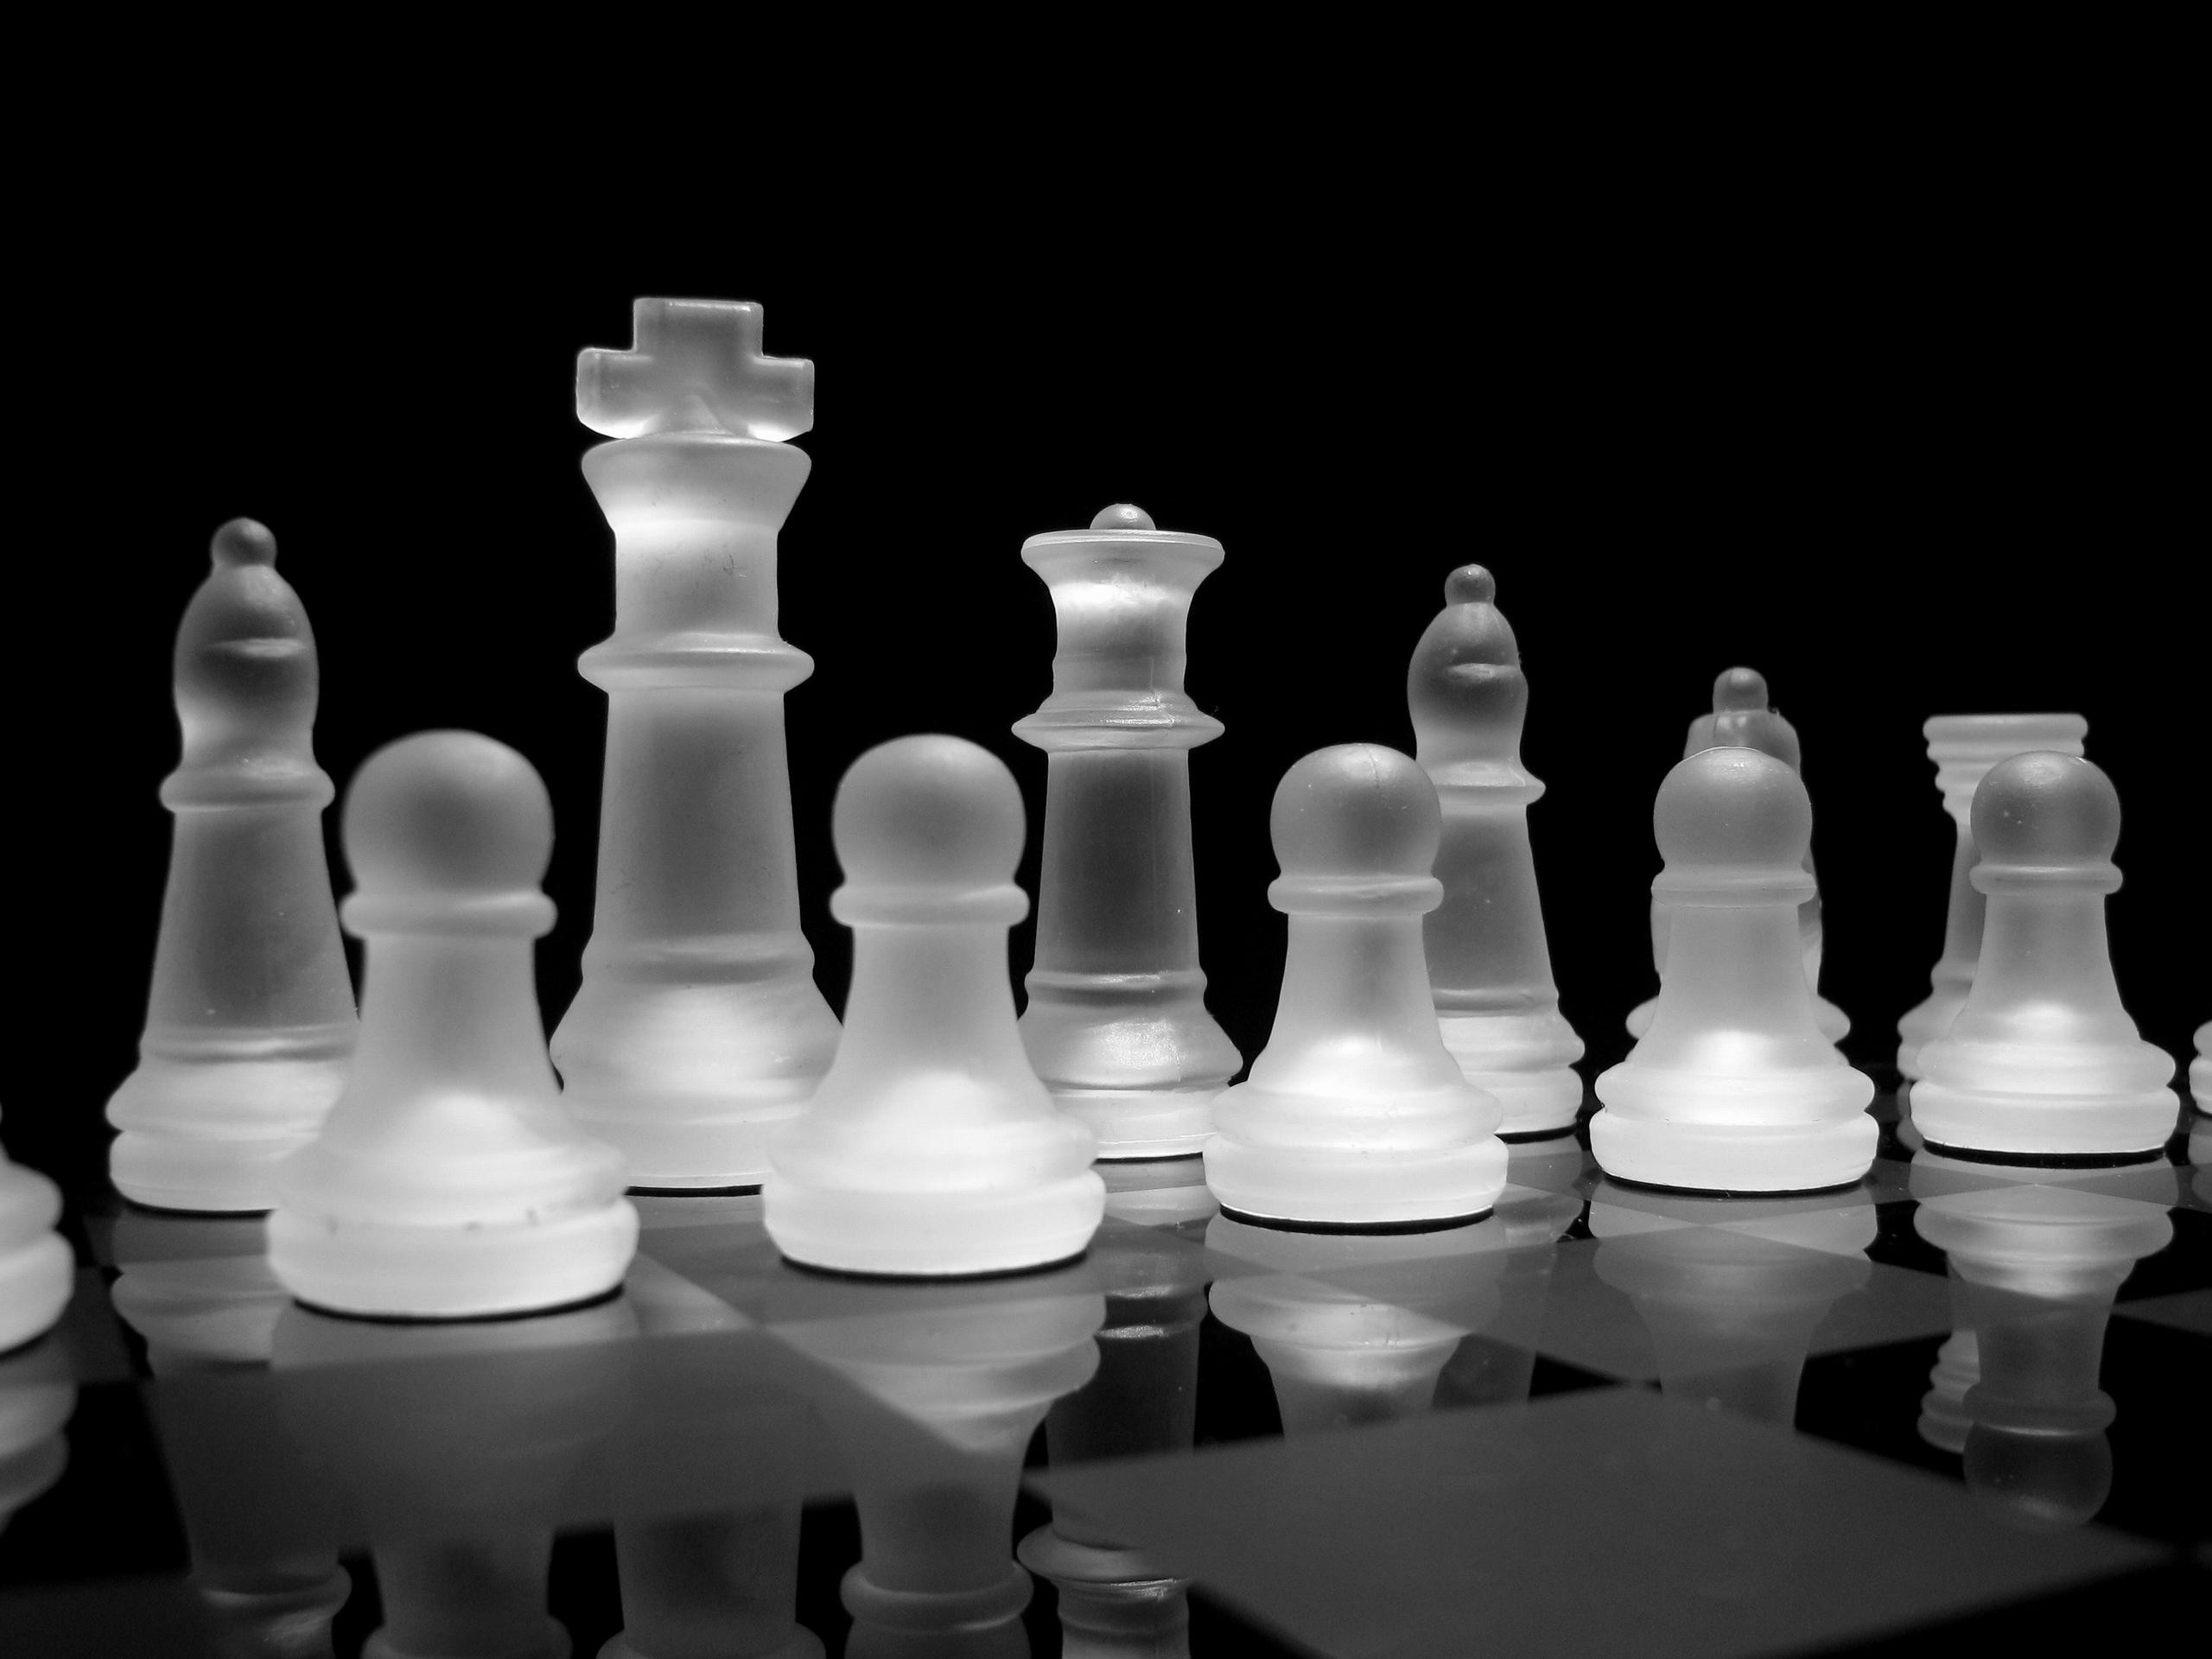 1920x1080 Wallpaper Chess Pieces Fighting Board